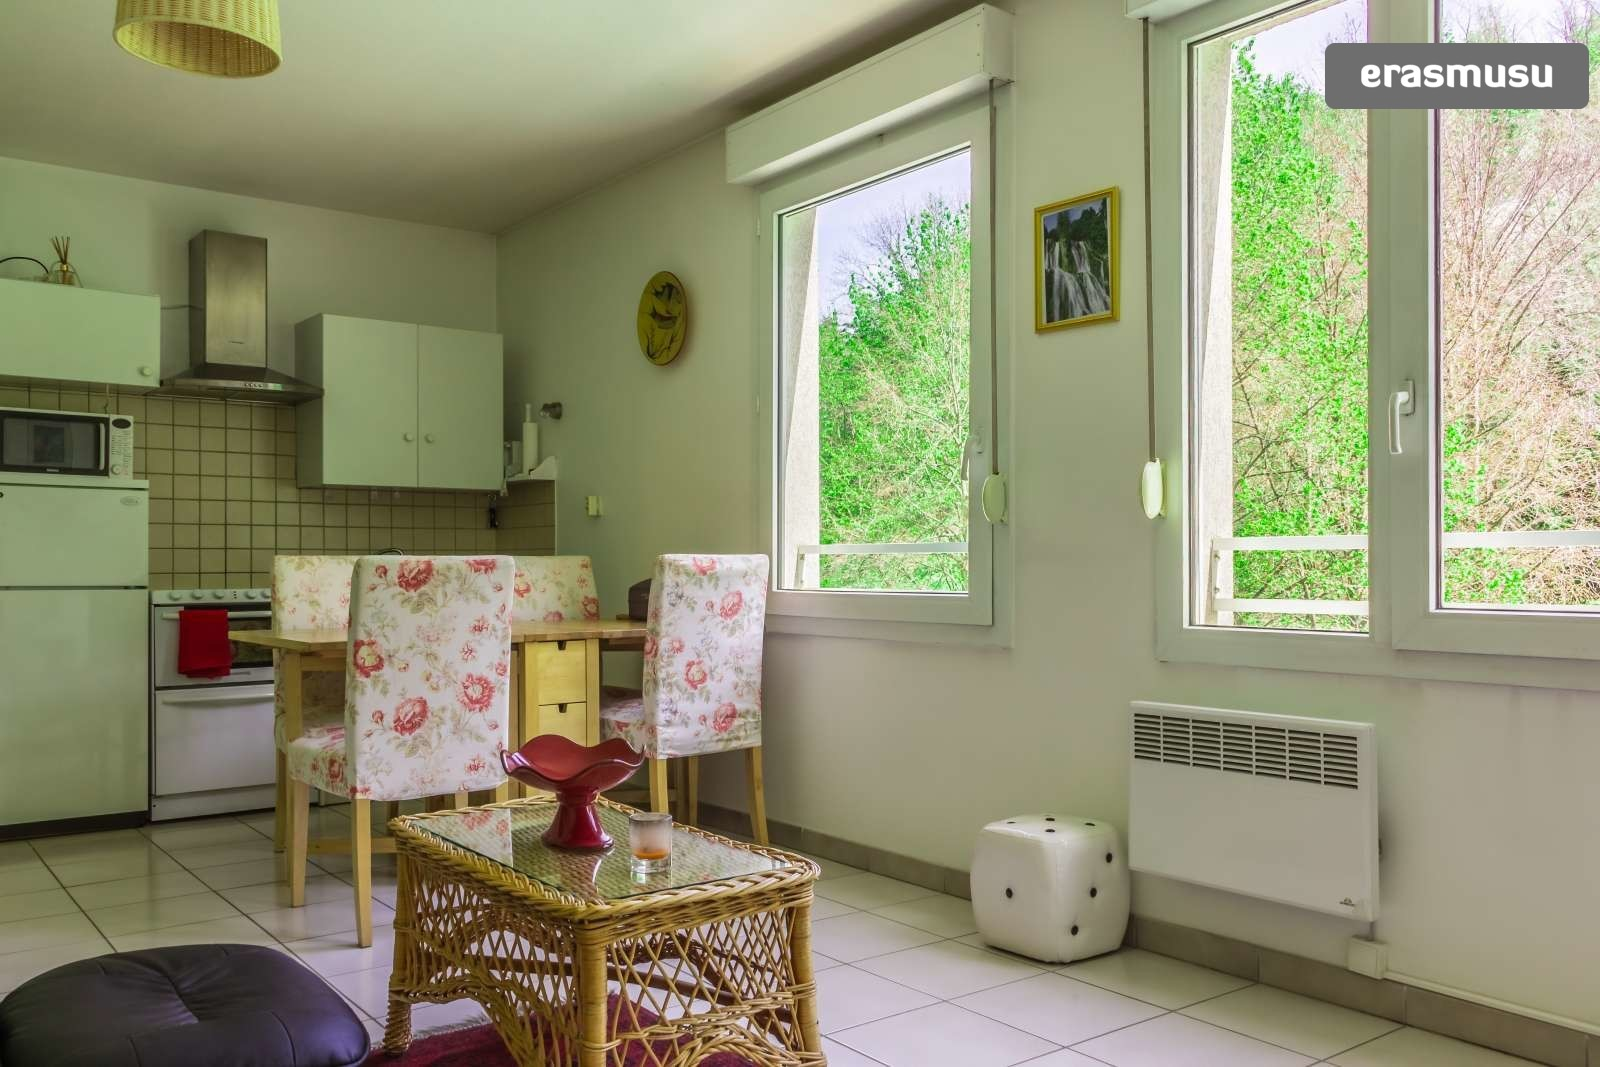 pet-friendly-studio-rent-9th-arrondissement-e40bac2e66f40fdeb1c4